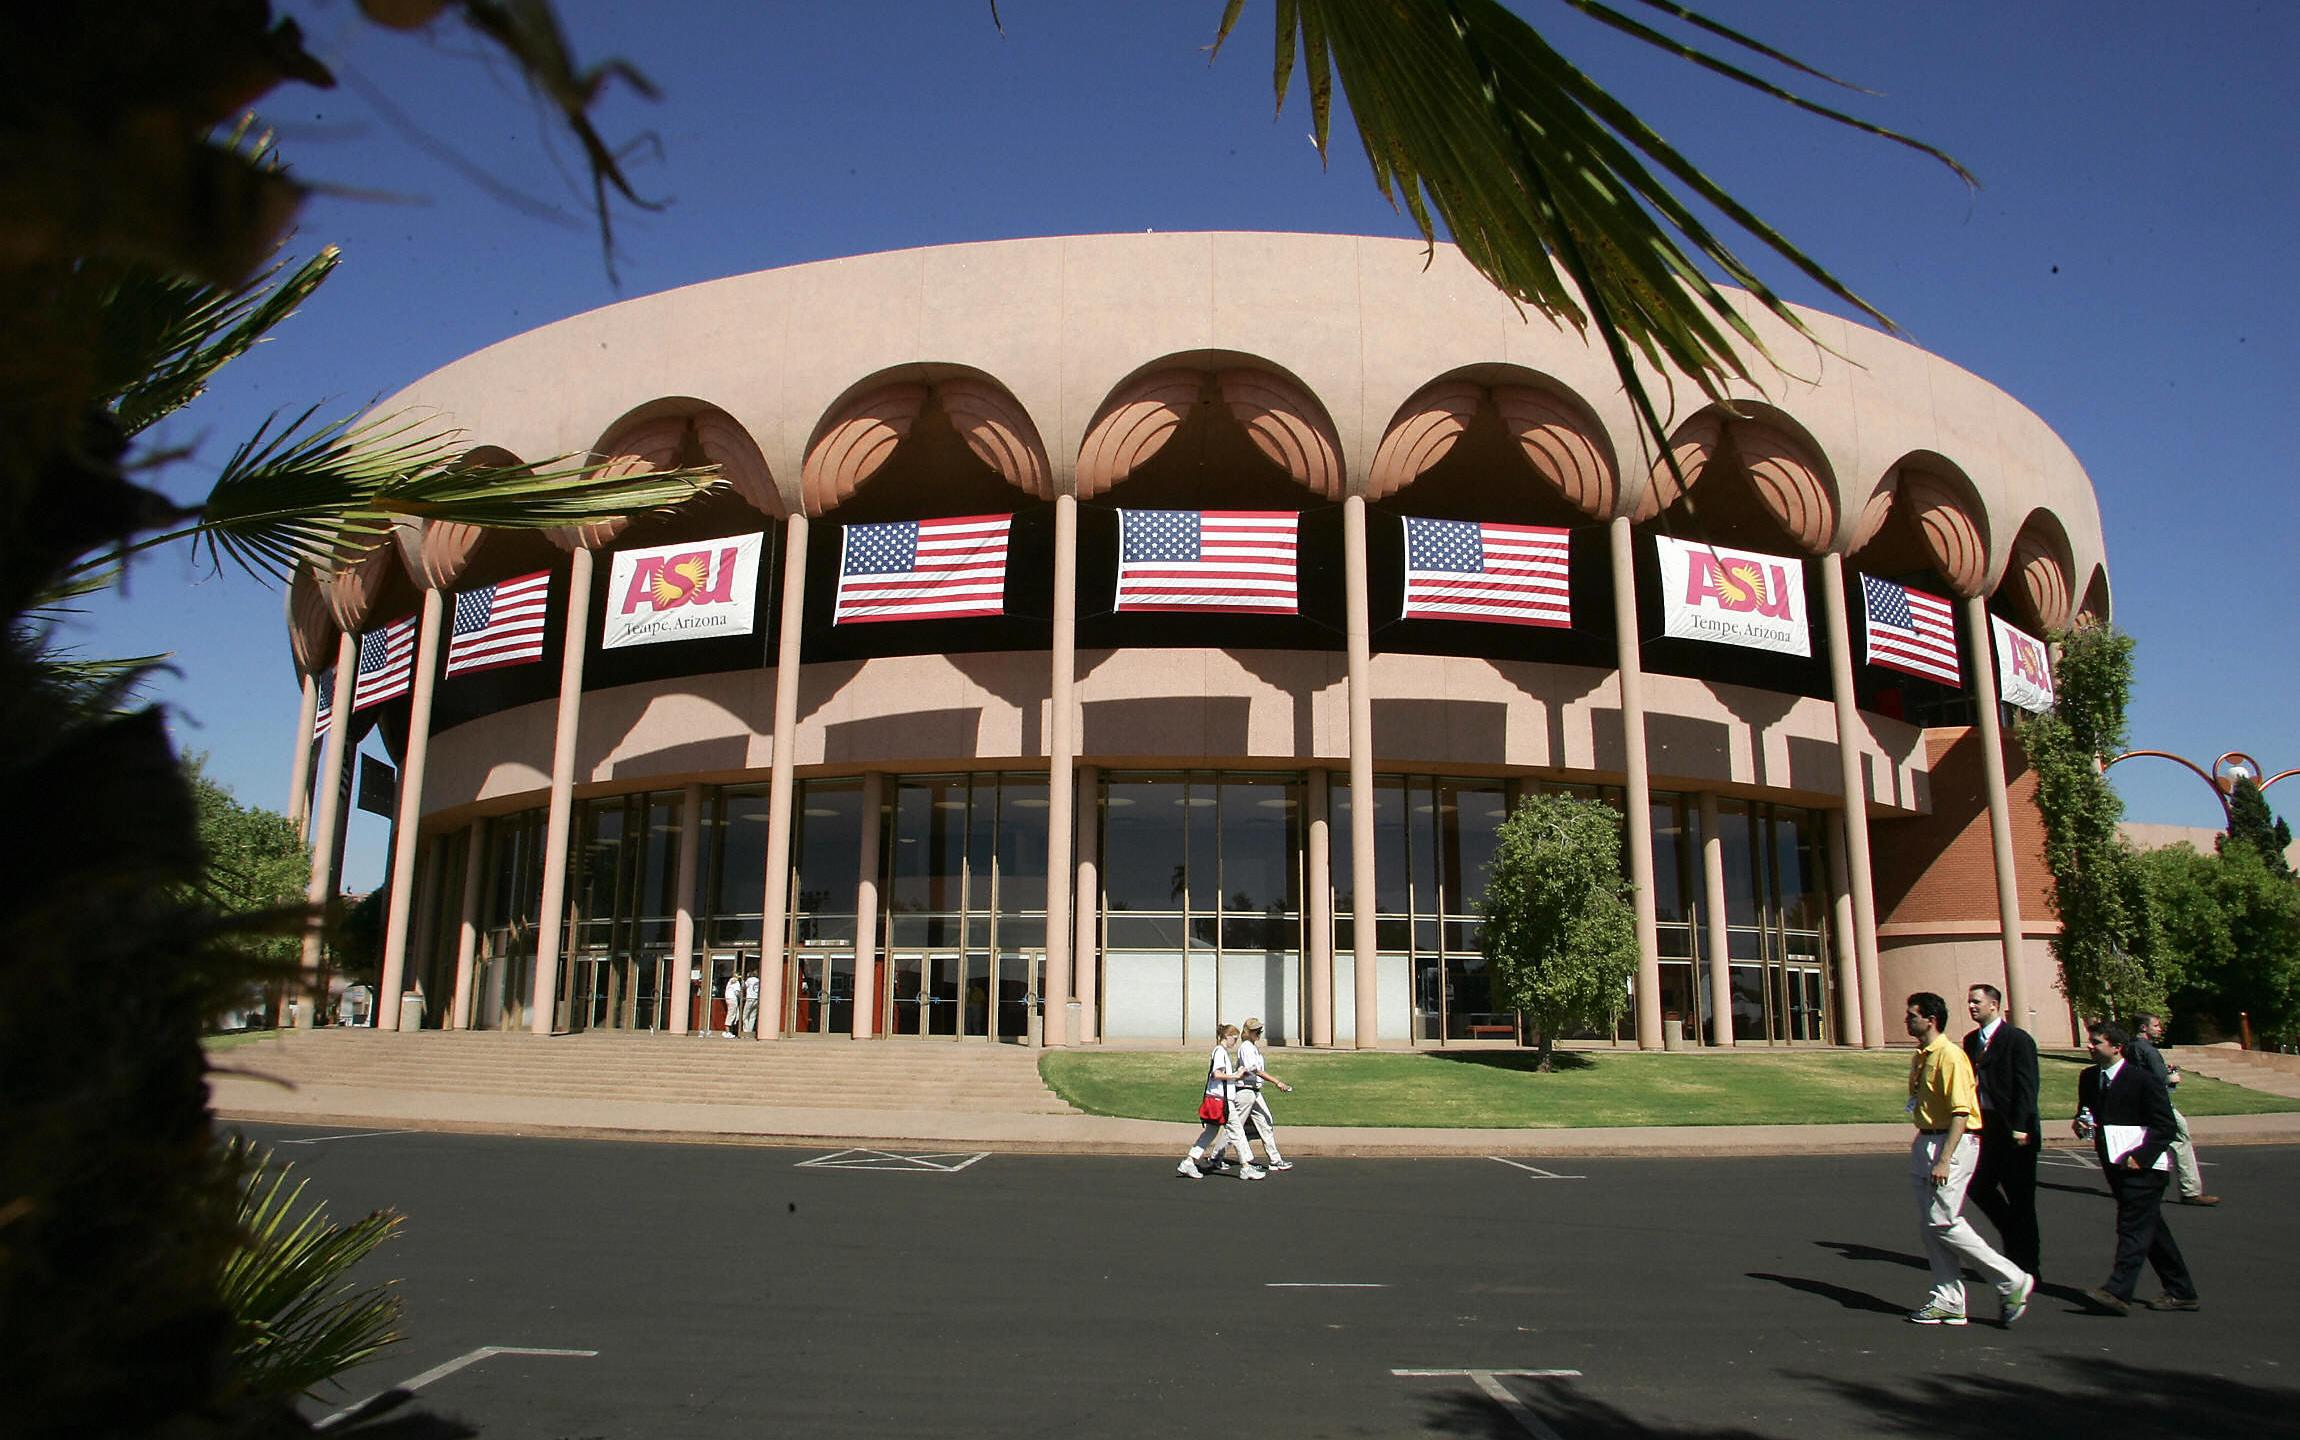 The Gammage Auditorium at the campus of Arizona State University in Tempe is seen on Oct. 13, 2004. (Credit: Robyn Beck/AFP/Getty Images)